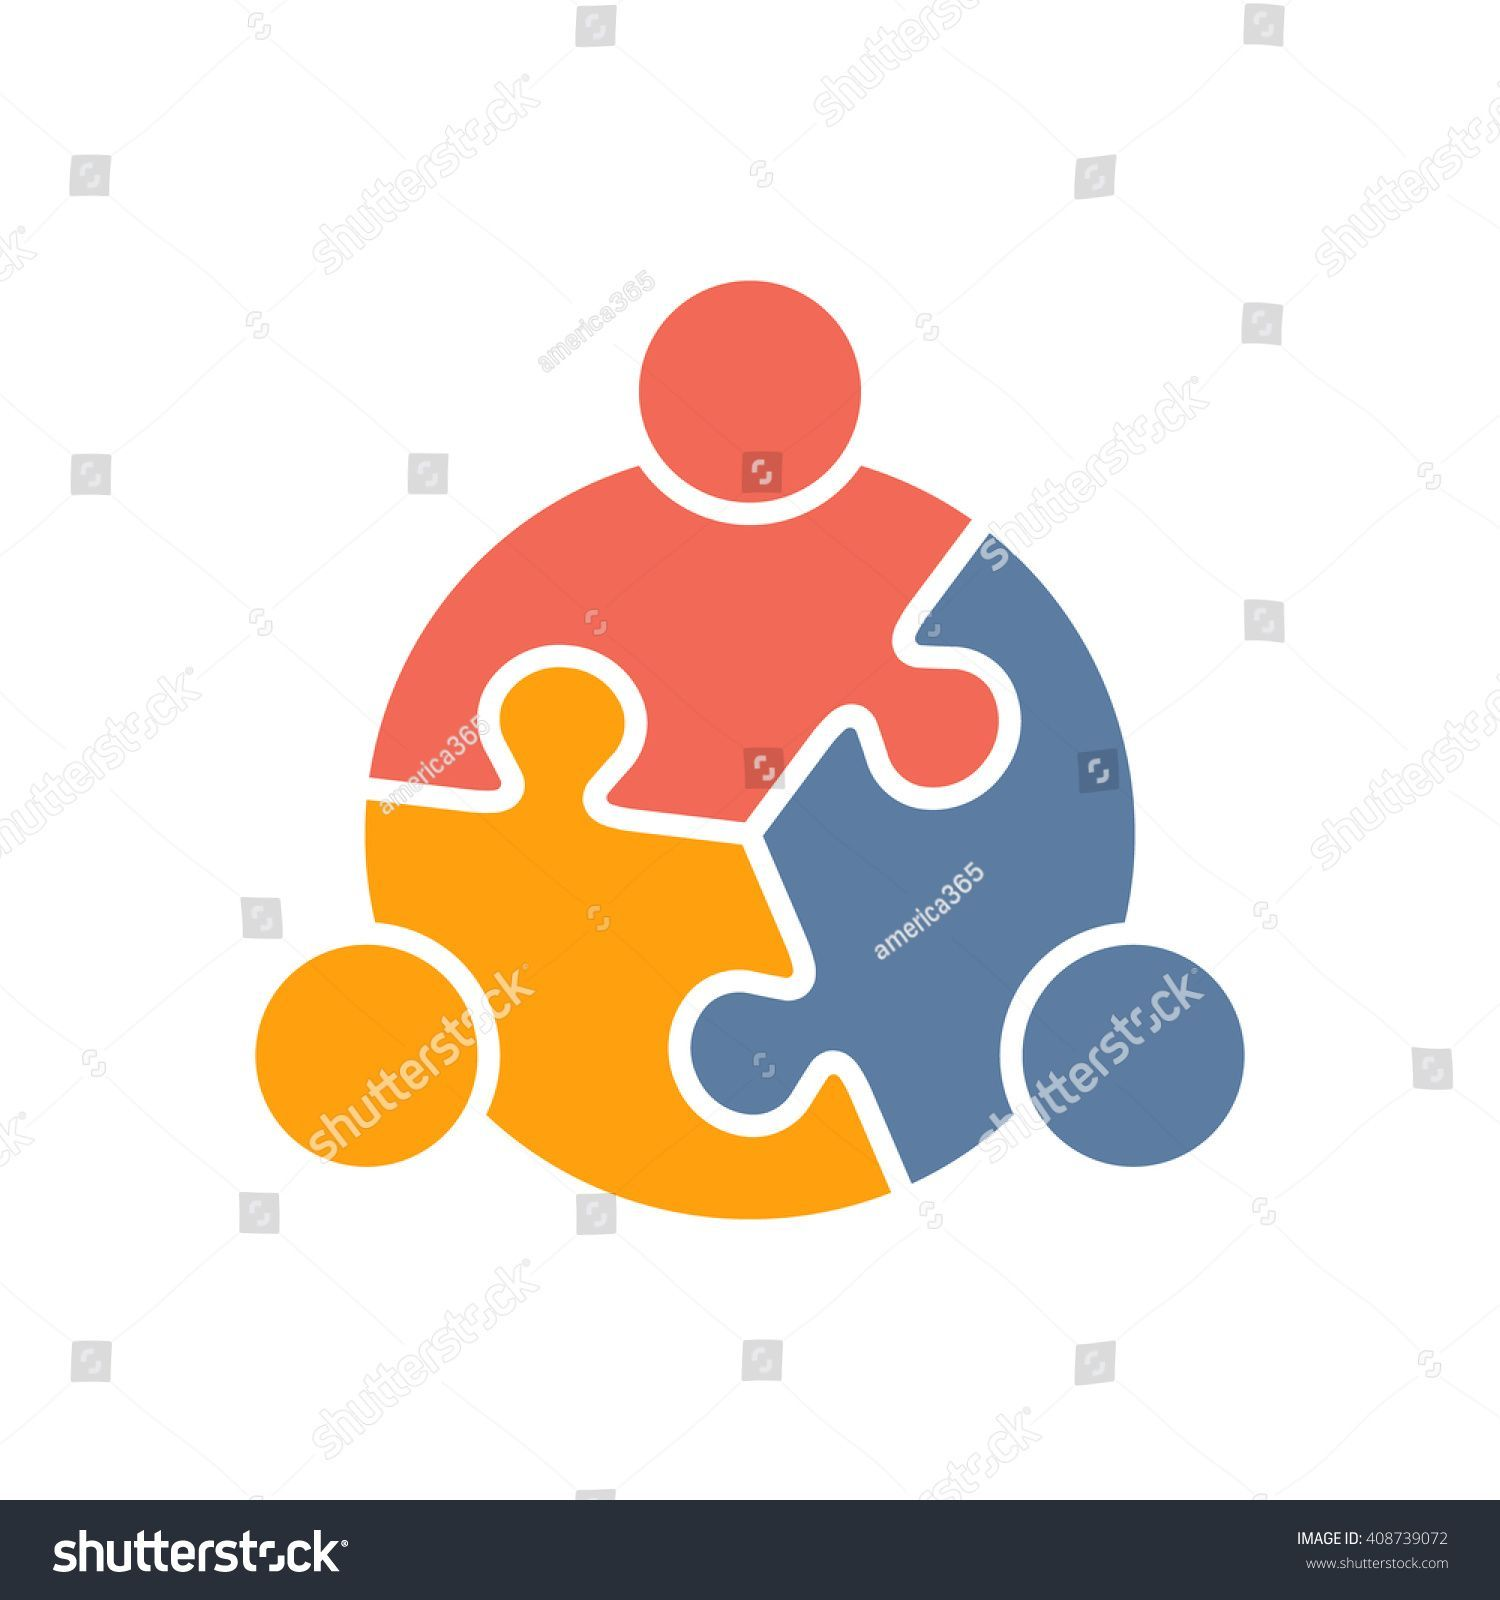 Teamwork People puzzle three pieces #people #social.